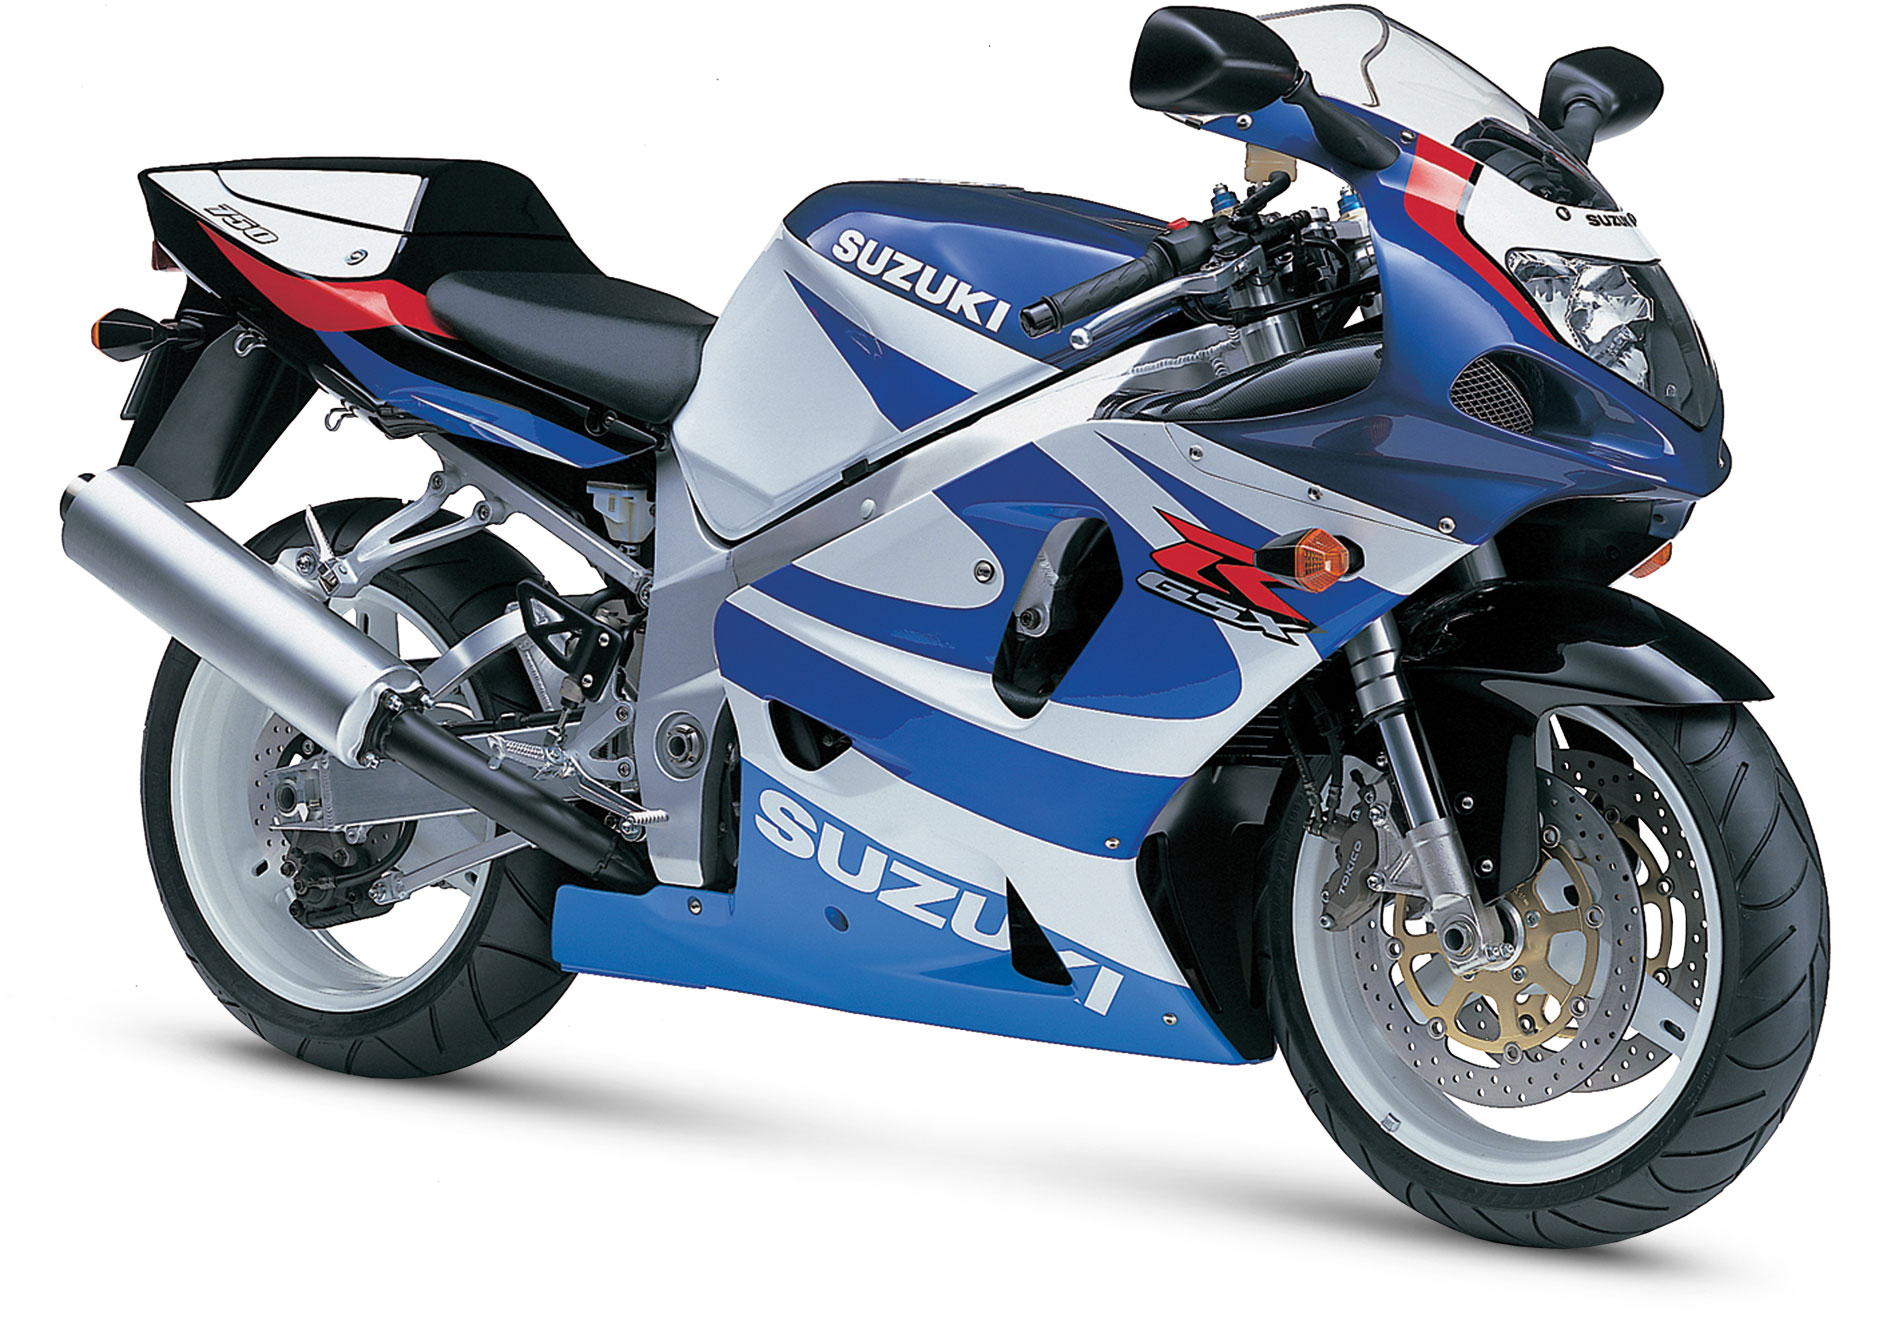 2000 To 2005 6th Generation Suzuki Gsx R750 Lighter Stronger And Faster